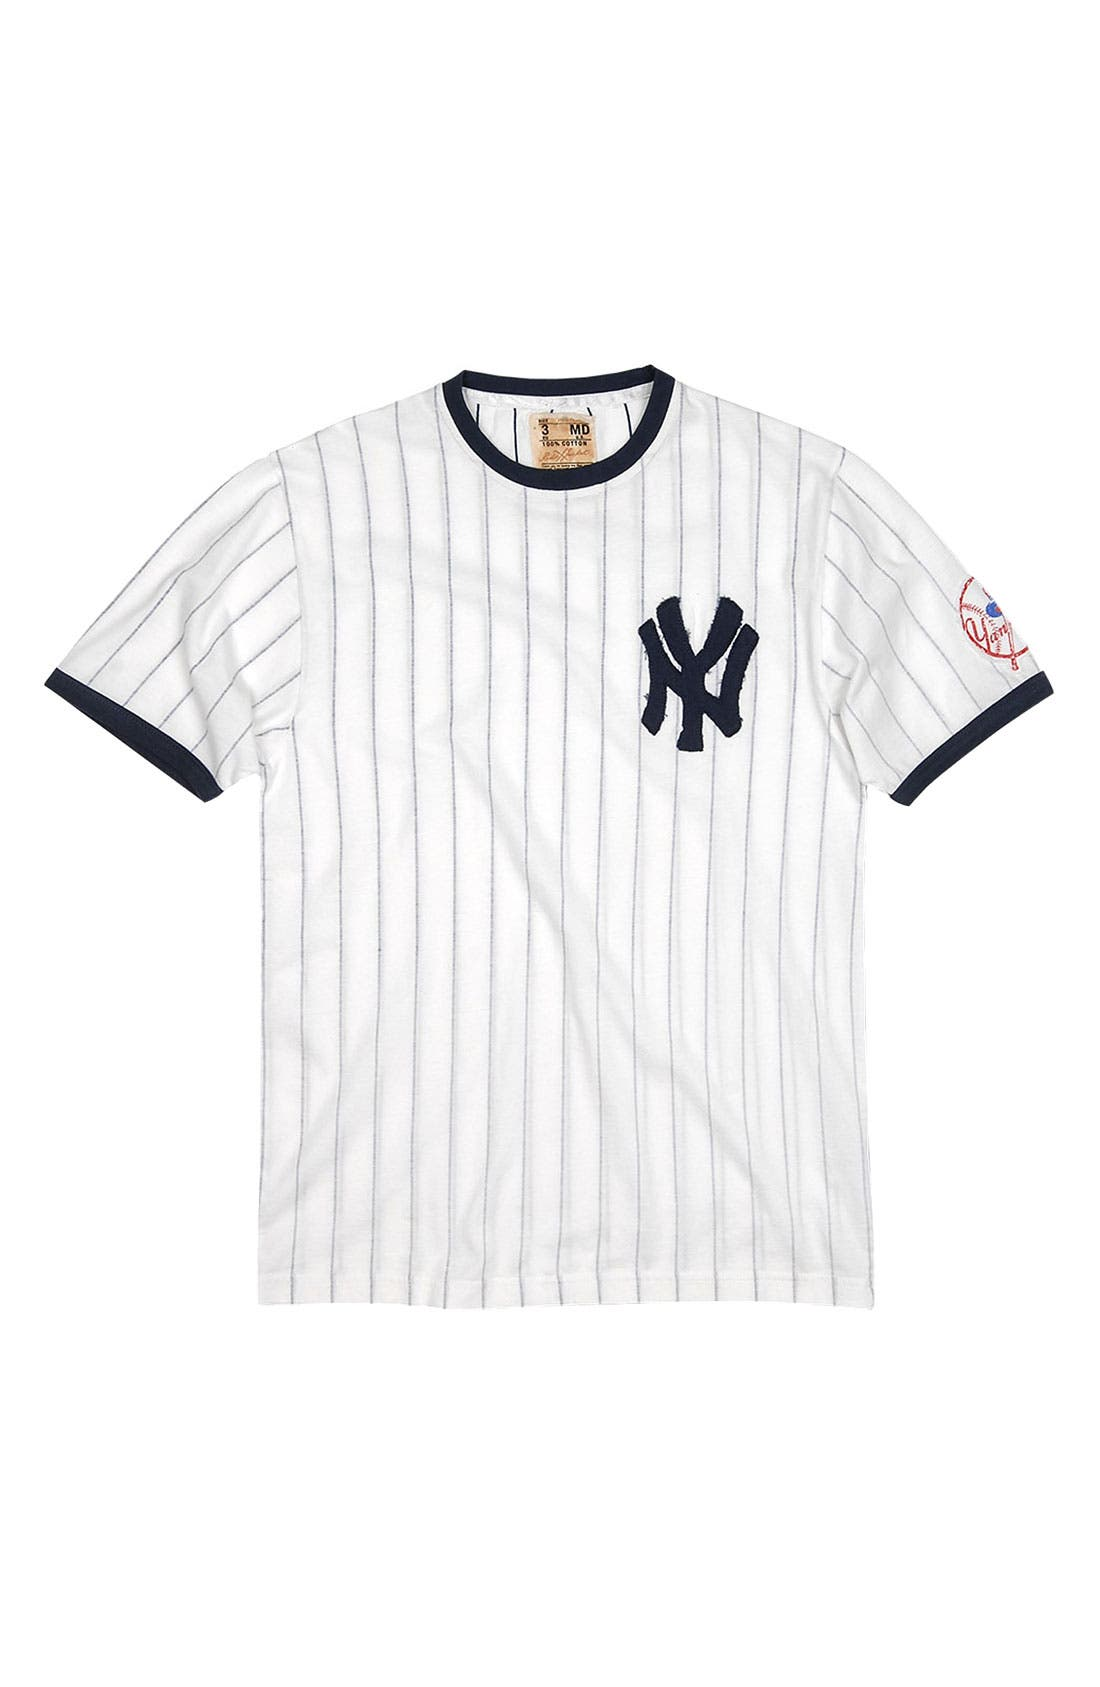 Alternate Image 4  - Red Jacket 'New York Yankees' Trim Fit Ringer T-Shirt (Men)